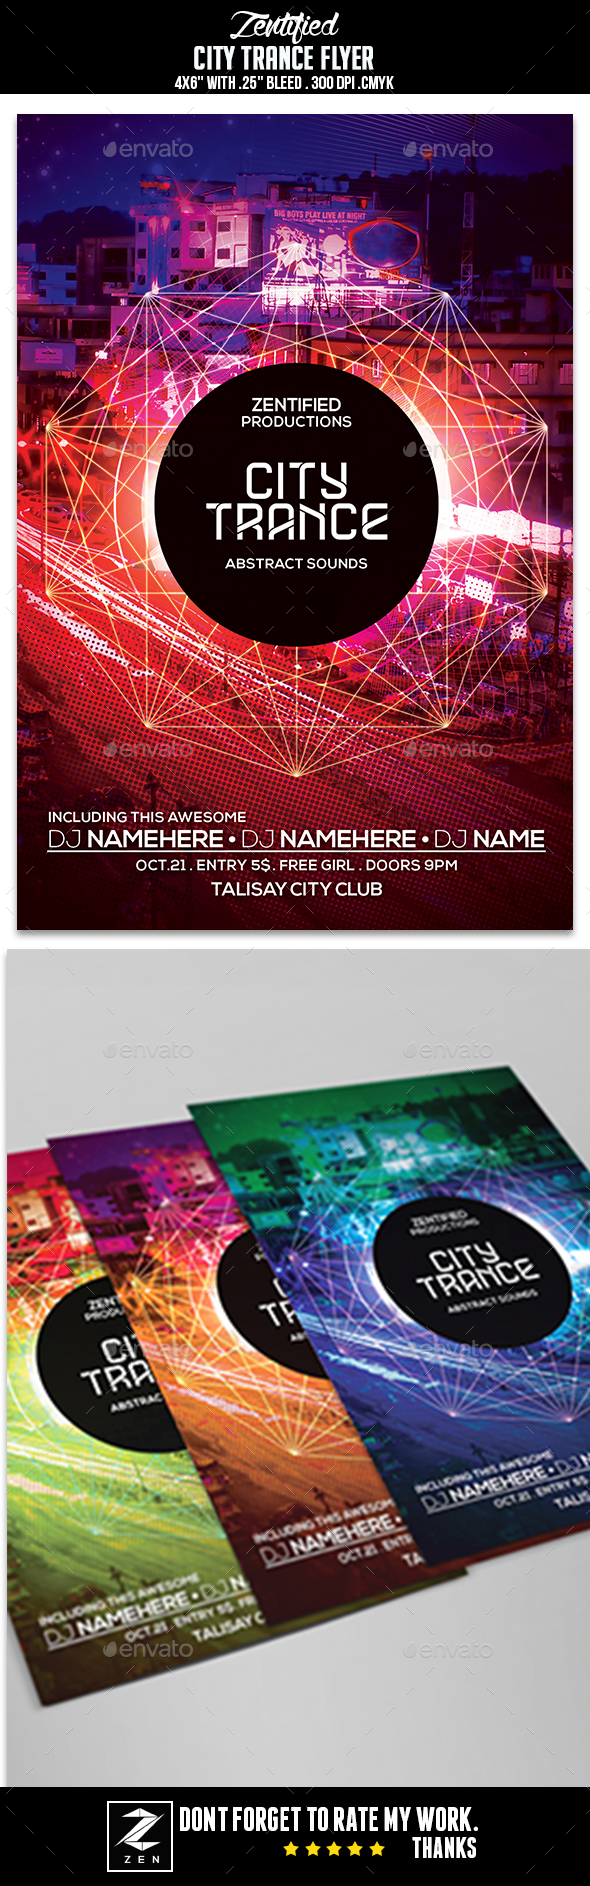 City Trance Flyer - Events Flyers